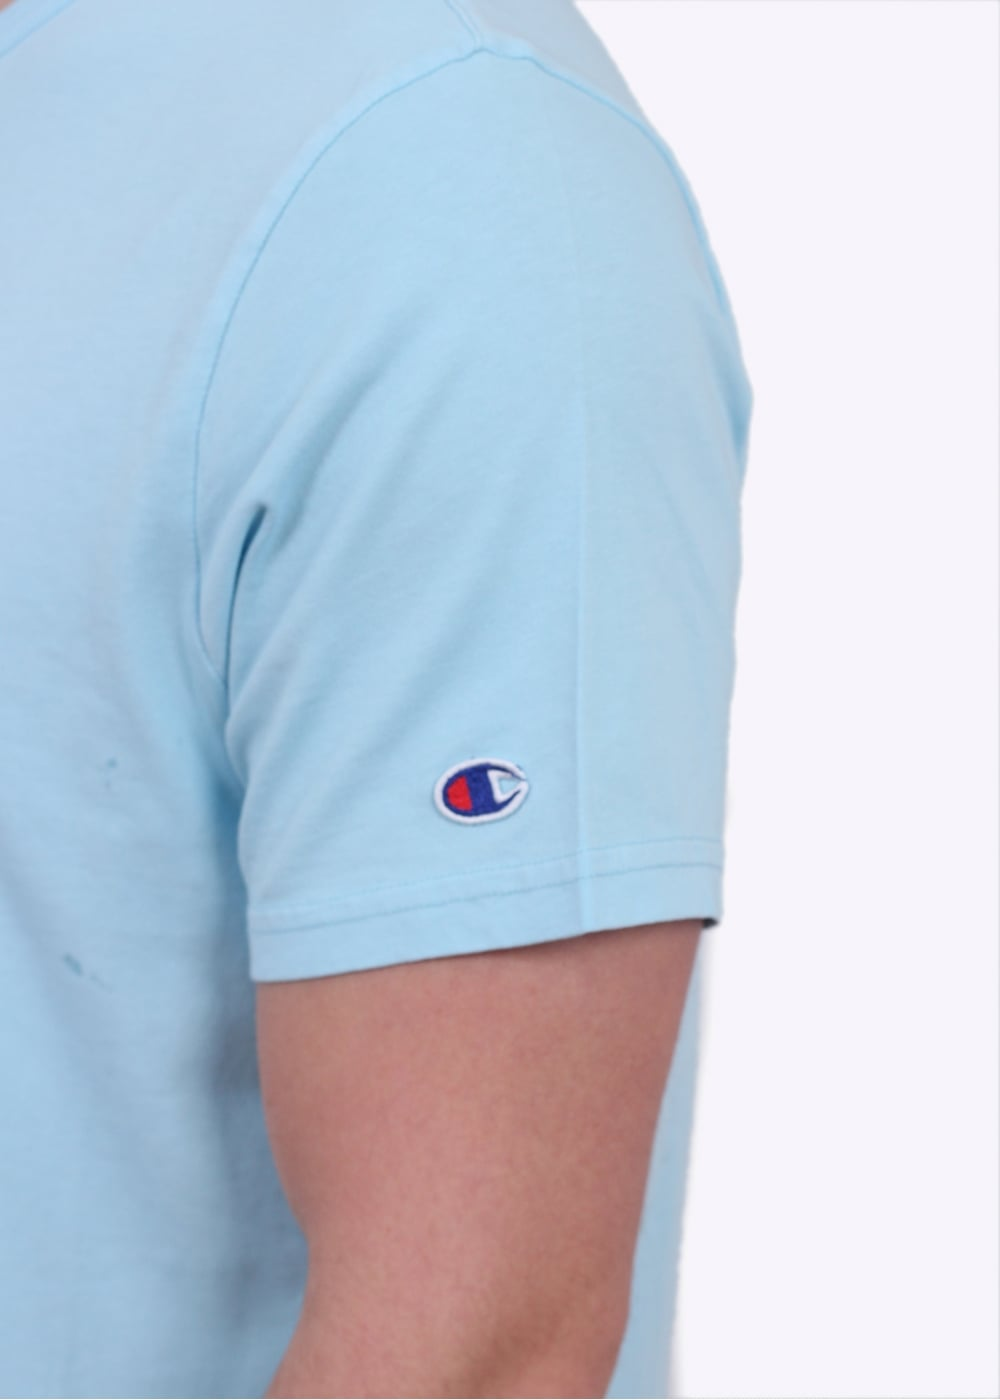 1bddc65b7d36 Champion Reverse Weave Classic SS Crew Tee - Light Blue - Triads ...